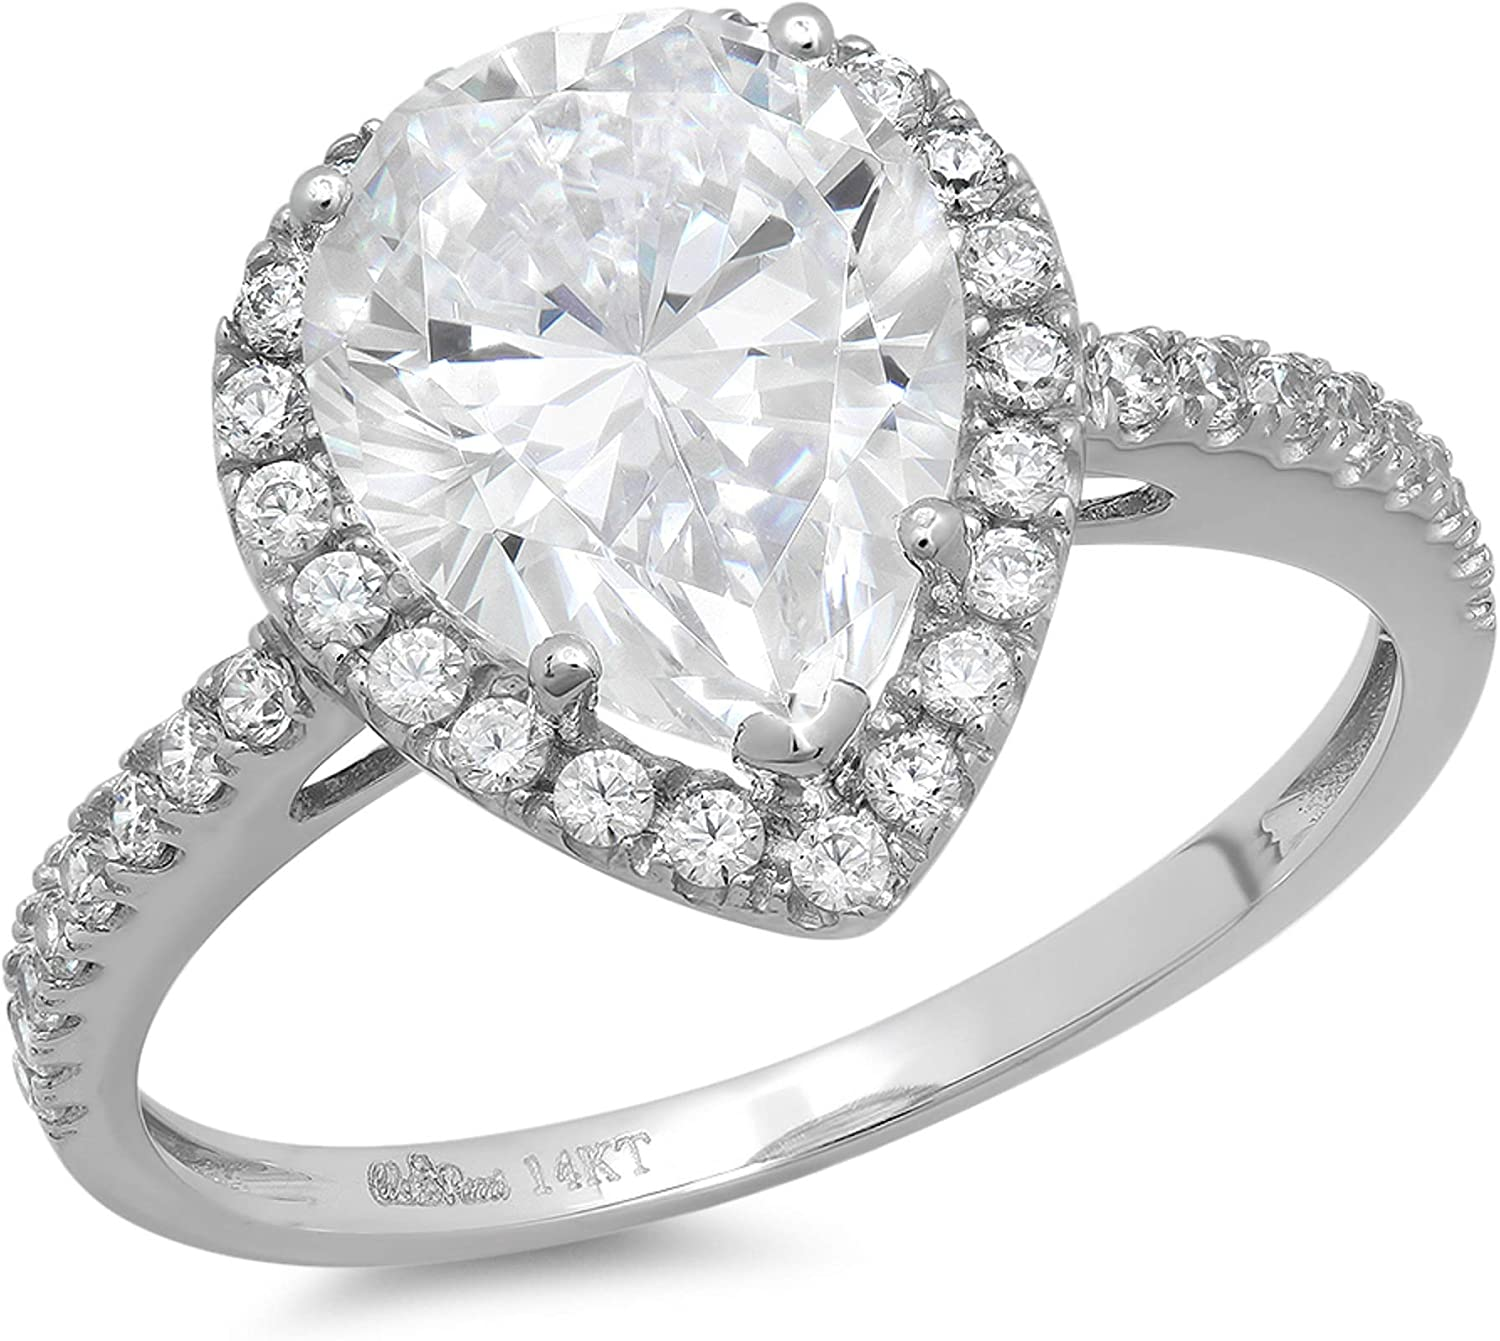 2.45ct Brilliant Pear Cut Solitaire with Accent Halo Stunning Genuine Lab Created White Sapphire Ideal VVS1 & Simulated Diamond Engagement Promise Anniversary Bridal Wedding Ring Solid 14k White Gold